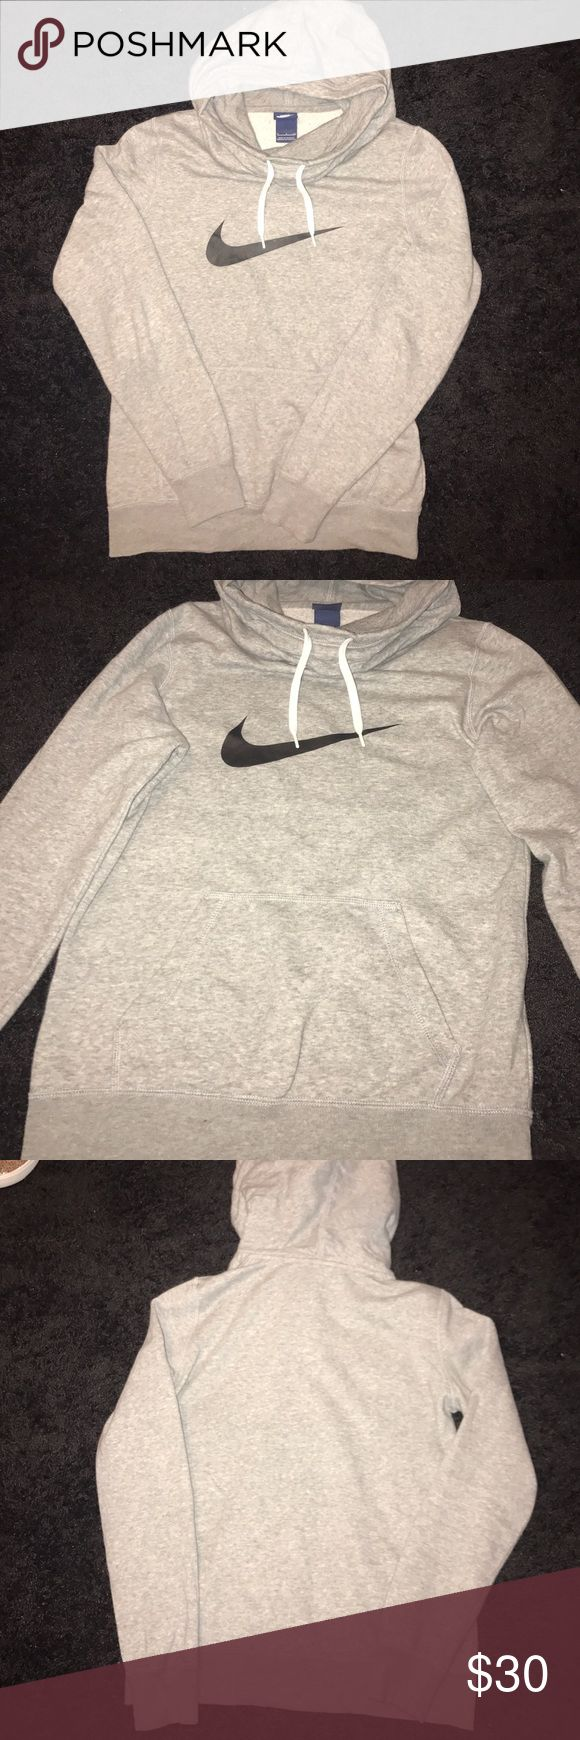 Grey Nike Hoodie TRENDY casual/active wear hoodie! I love the cowl neck look! Large pocket in the front. Drawl strings. NO STAINS. Minimal signs of wear (piling). Feel free to make an offer💎 Nike Tops Sweatshirts & Hoodies